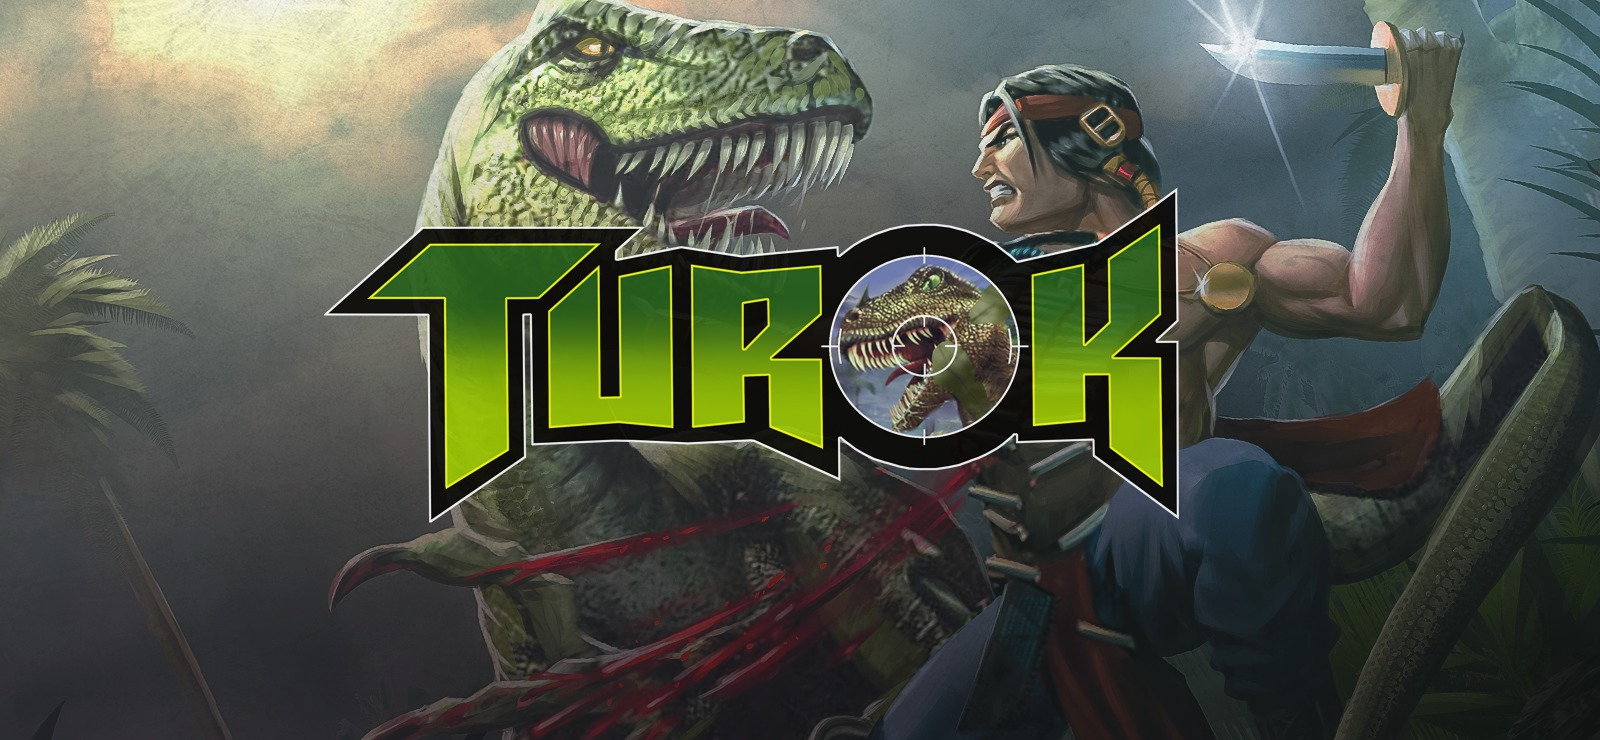 Regresará Turok a Xbox One